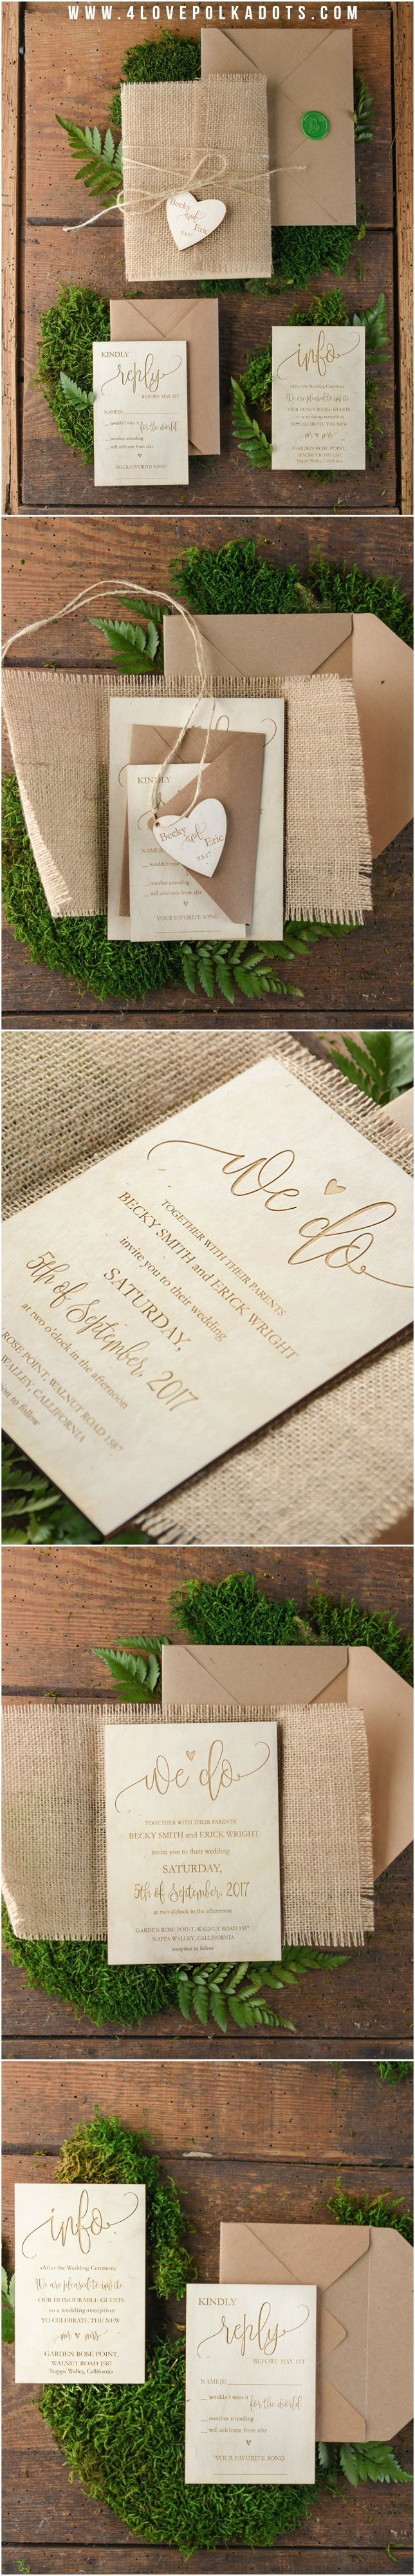 And these beautiful wedding invitations by